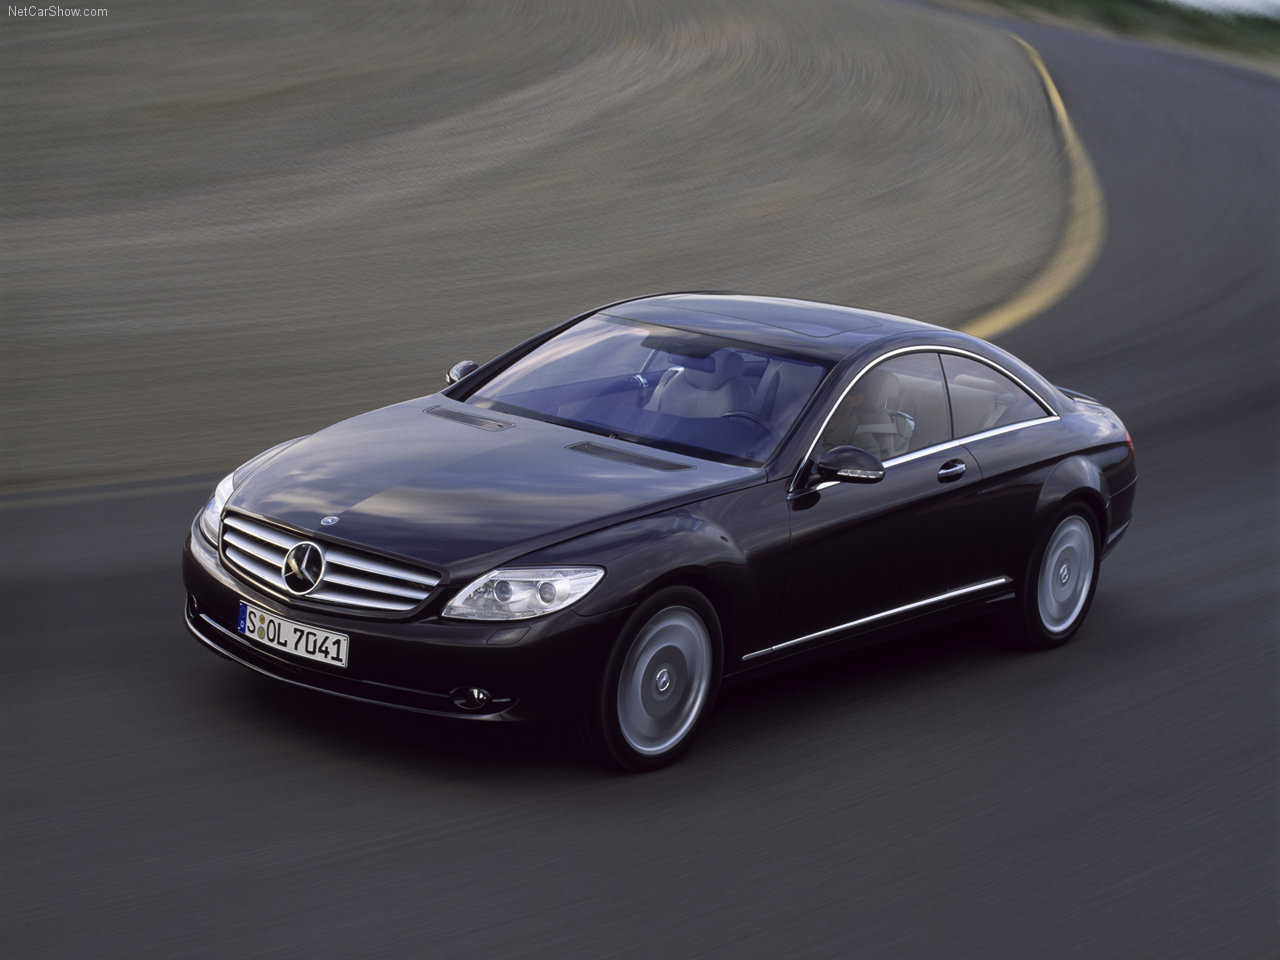 Mercedes benz cl 500 photos reviews news specs buy car for Autos mercedes benz